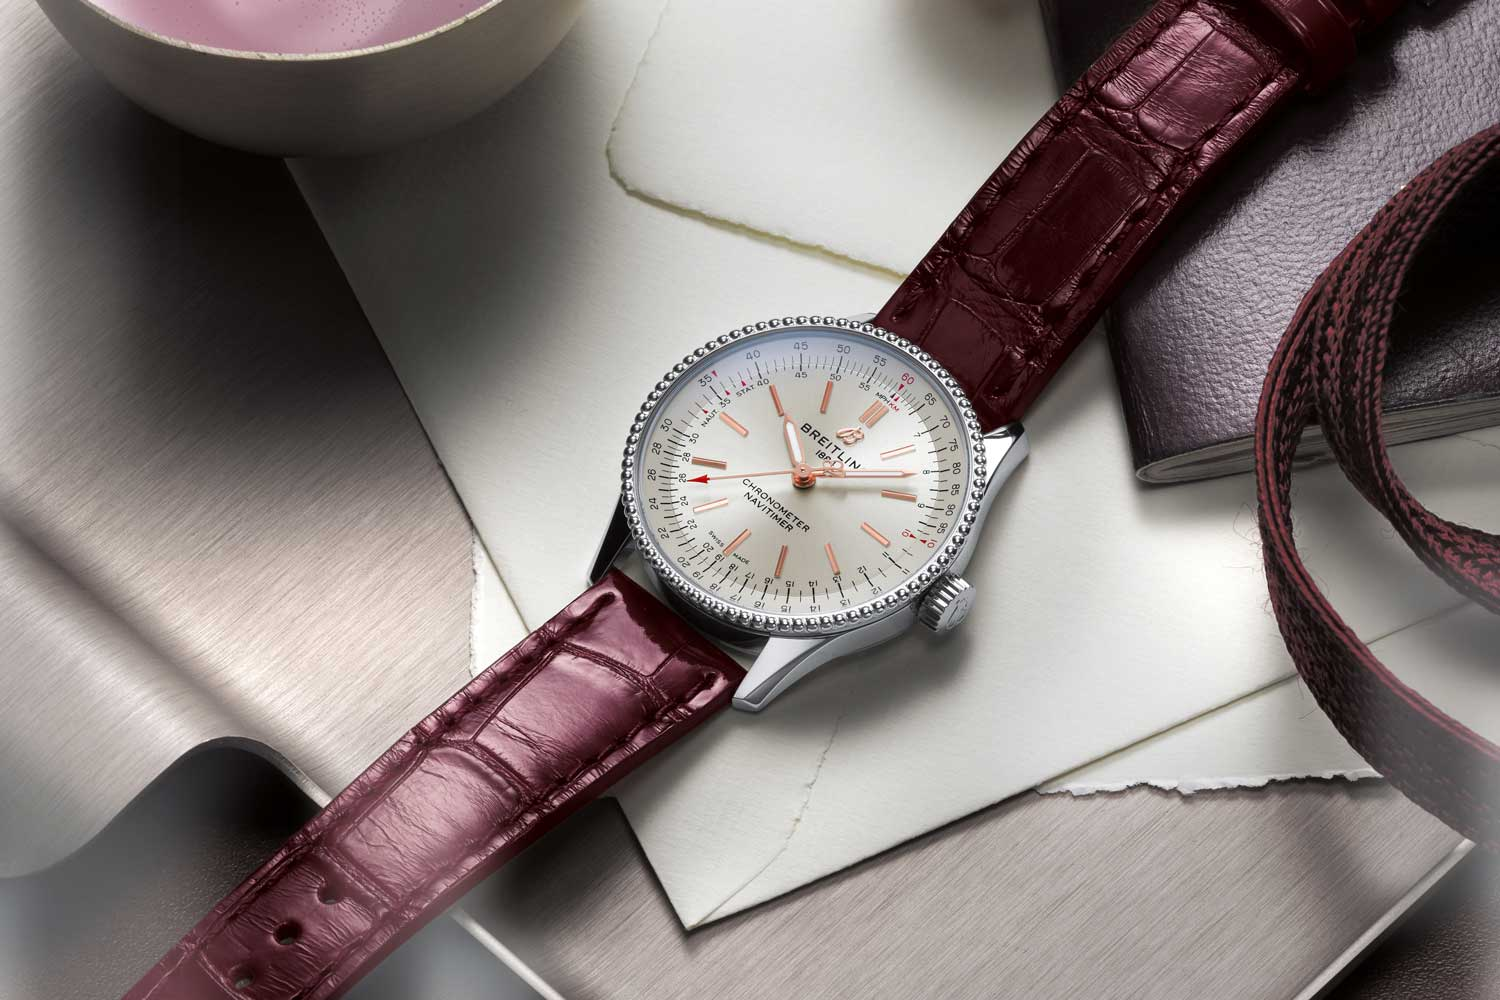 Navitimer Automatic 35 with a silver dial and a burgundy alligator leather strap